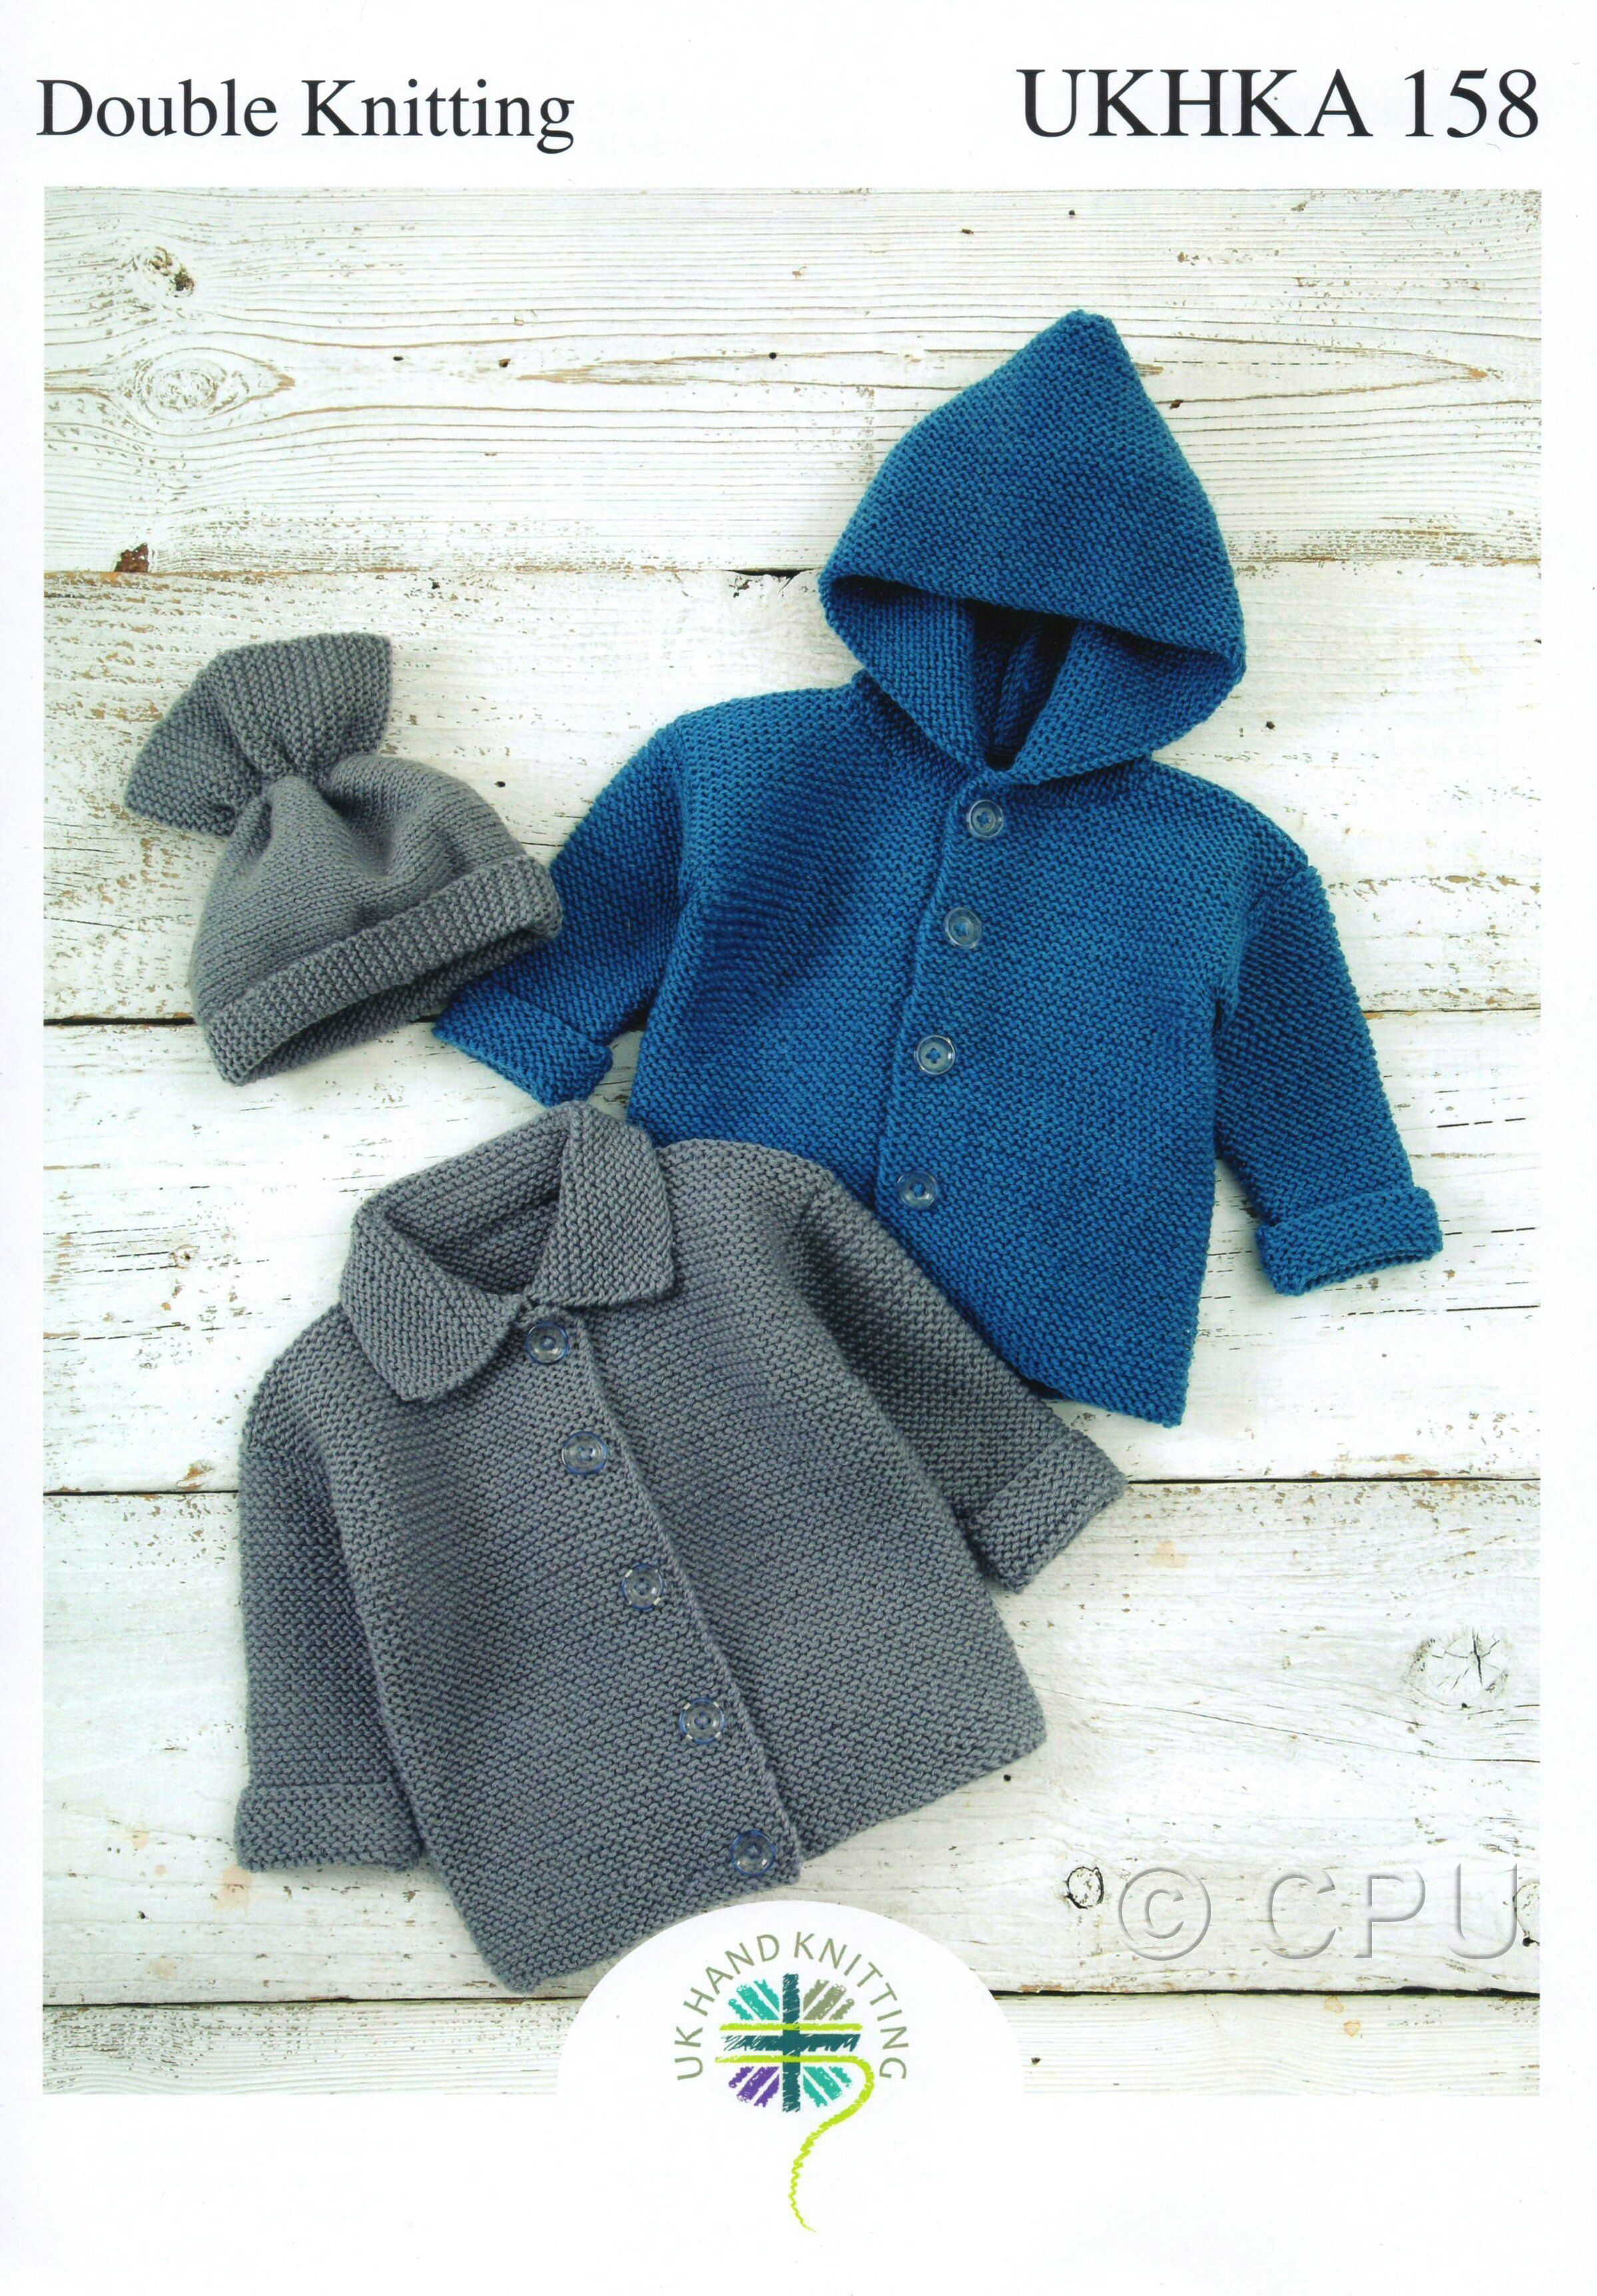 ab5a68eff UK Hand Knitting Association Pattern Leaflet UKHKA158 £2.30 Double Knit  Knitted Jackets and Hat Chest 35cm to 50cm - Age Birth to 12 months